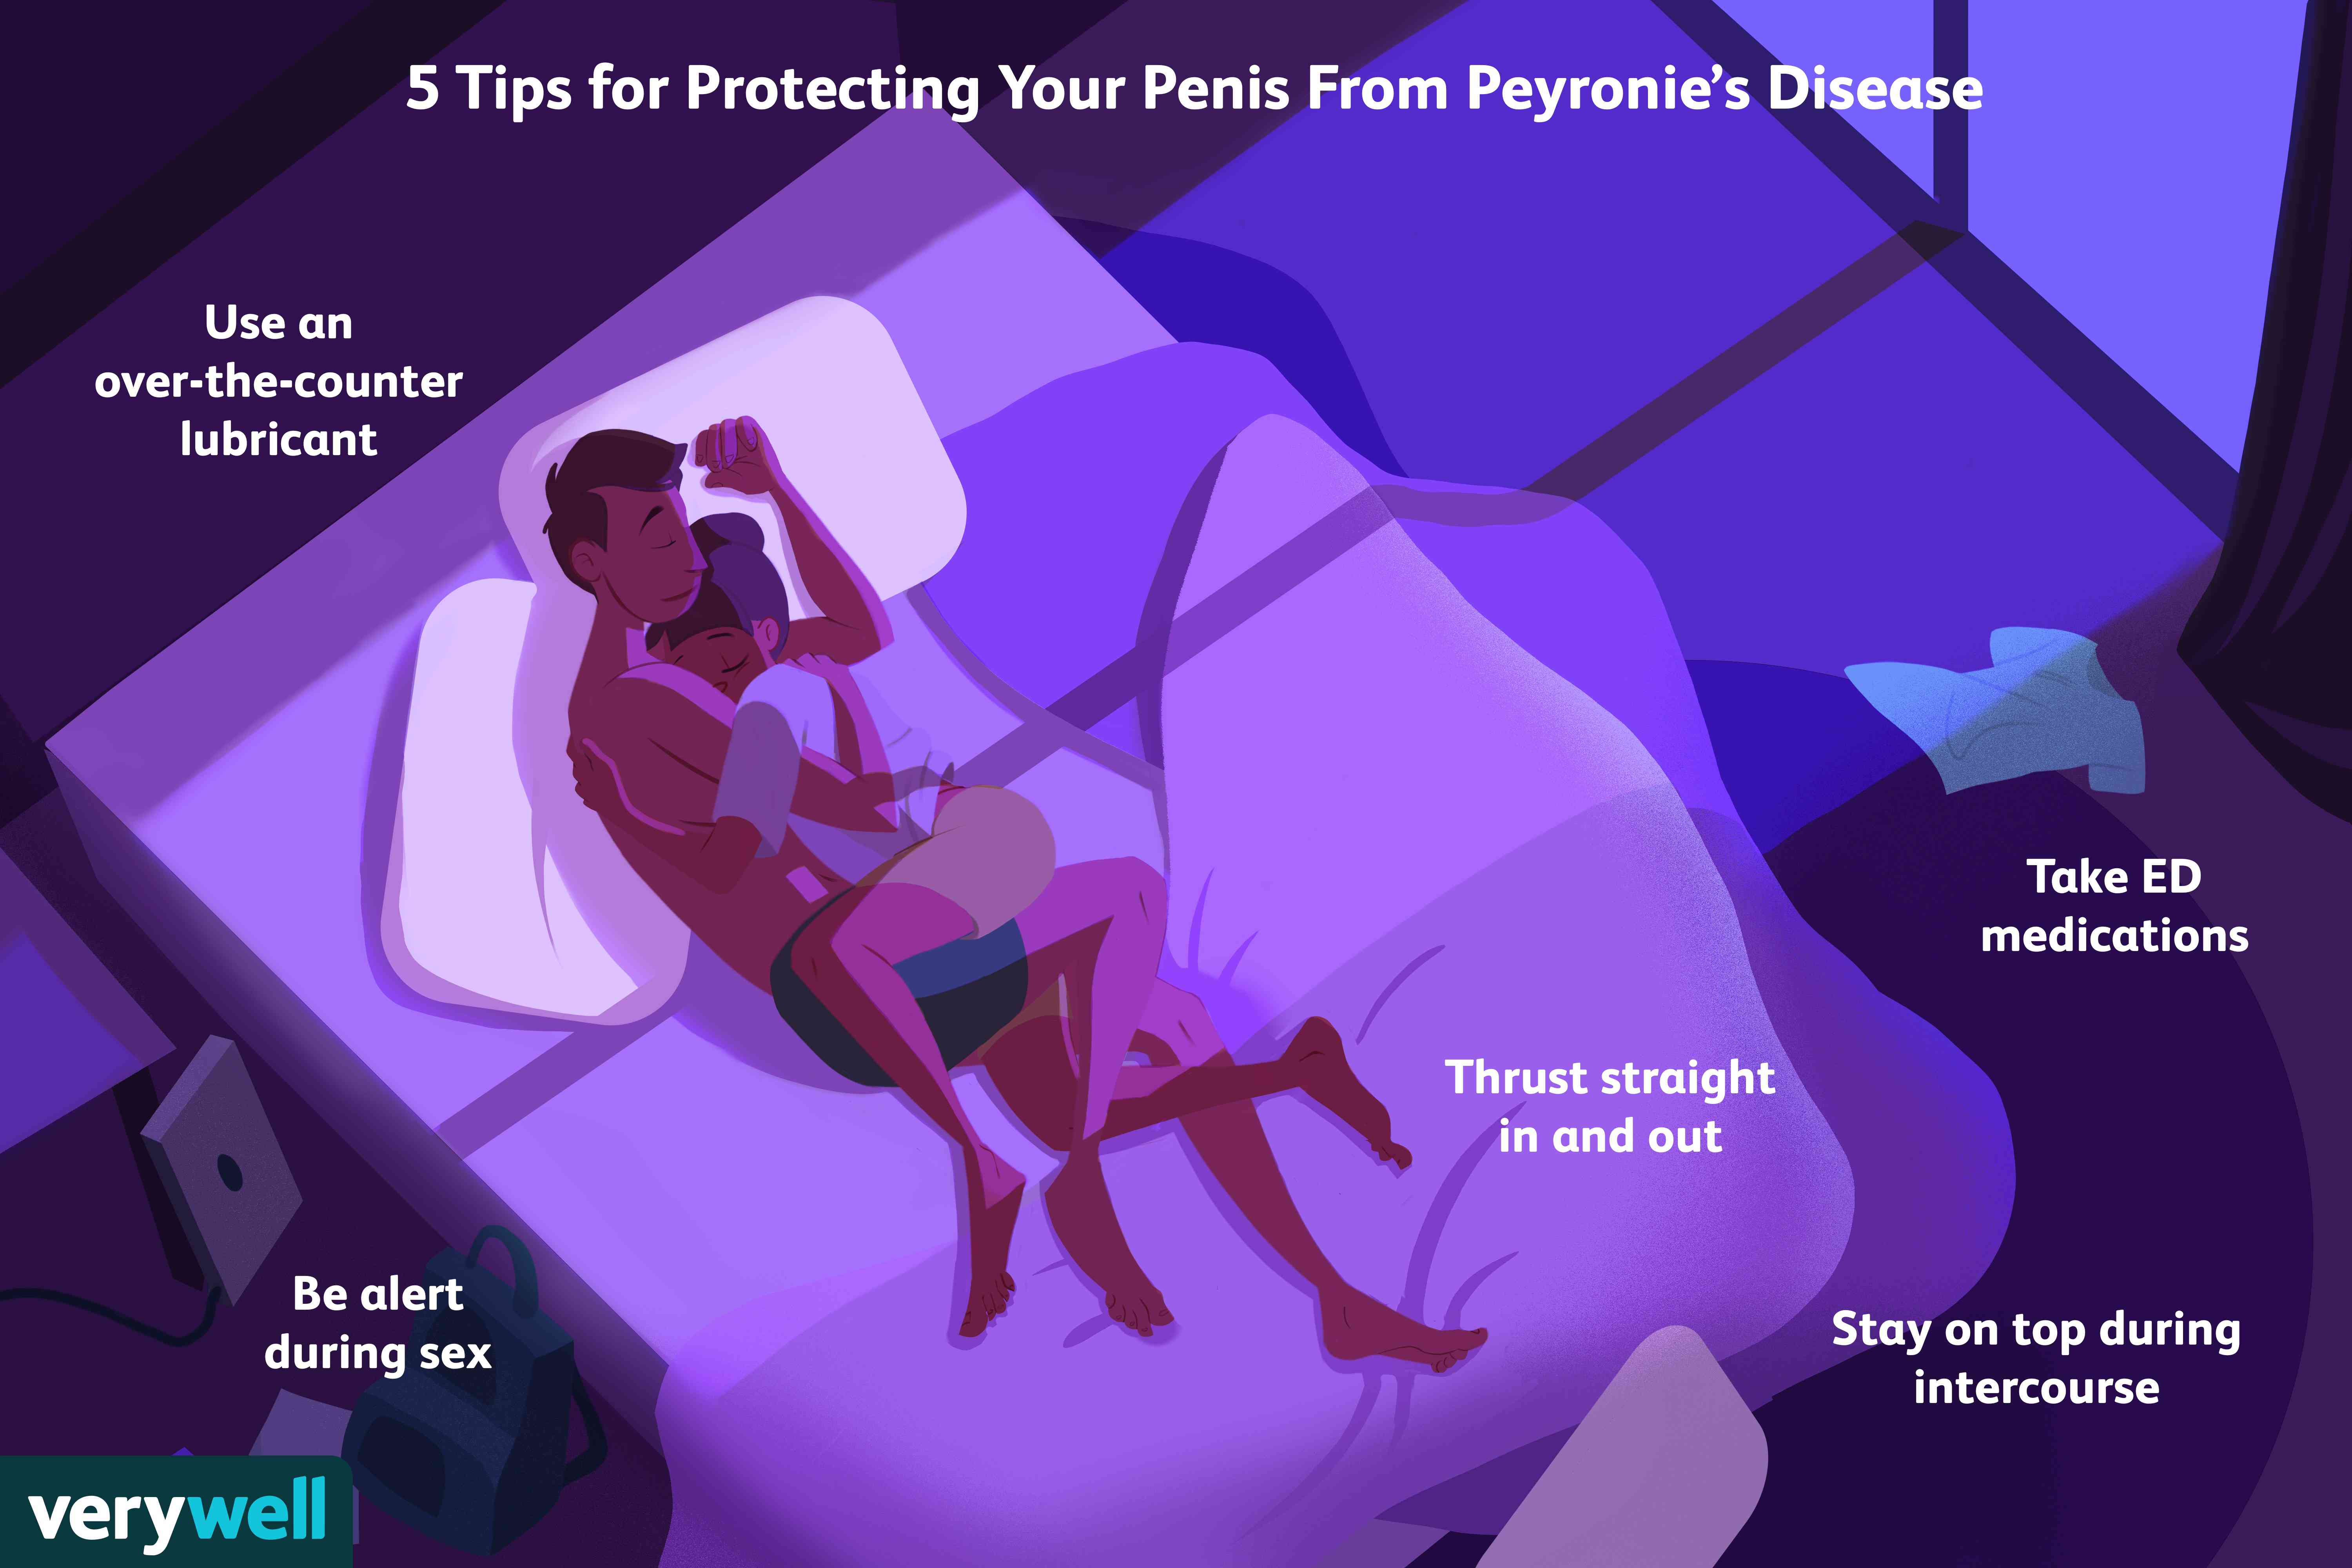 5 tips for protecting your penis from peyronies disease